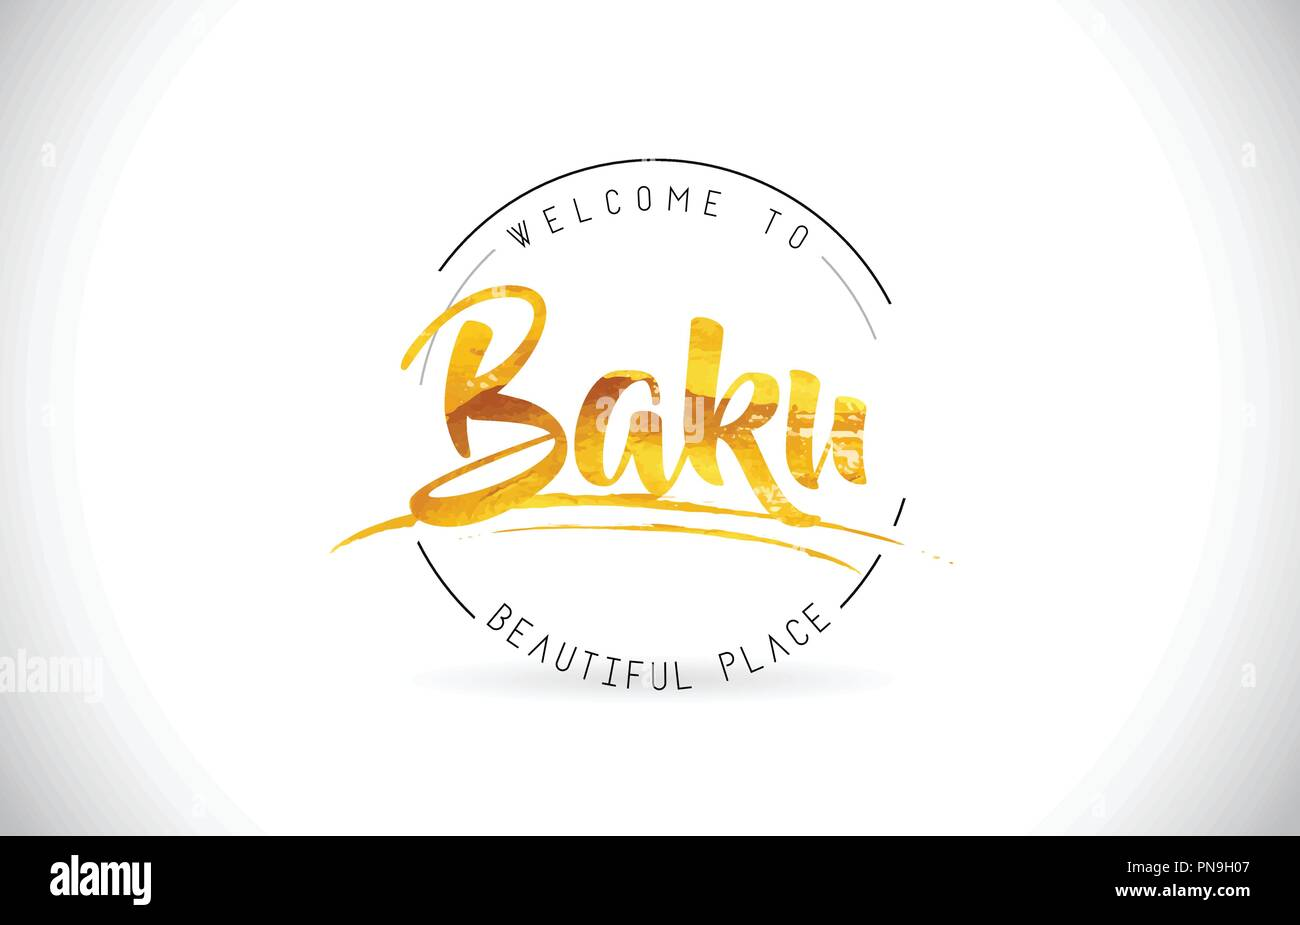 Baku Welcome To Word Text with Handwritten Font and Golden Texture Design Illustration Vector. - Stock Vector